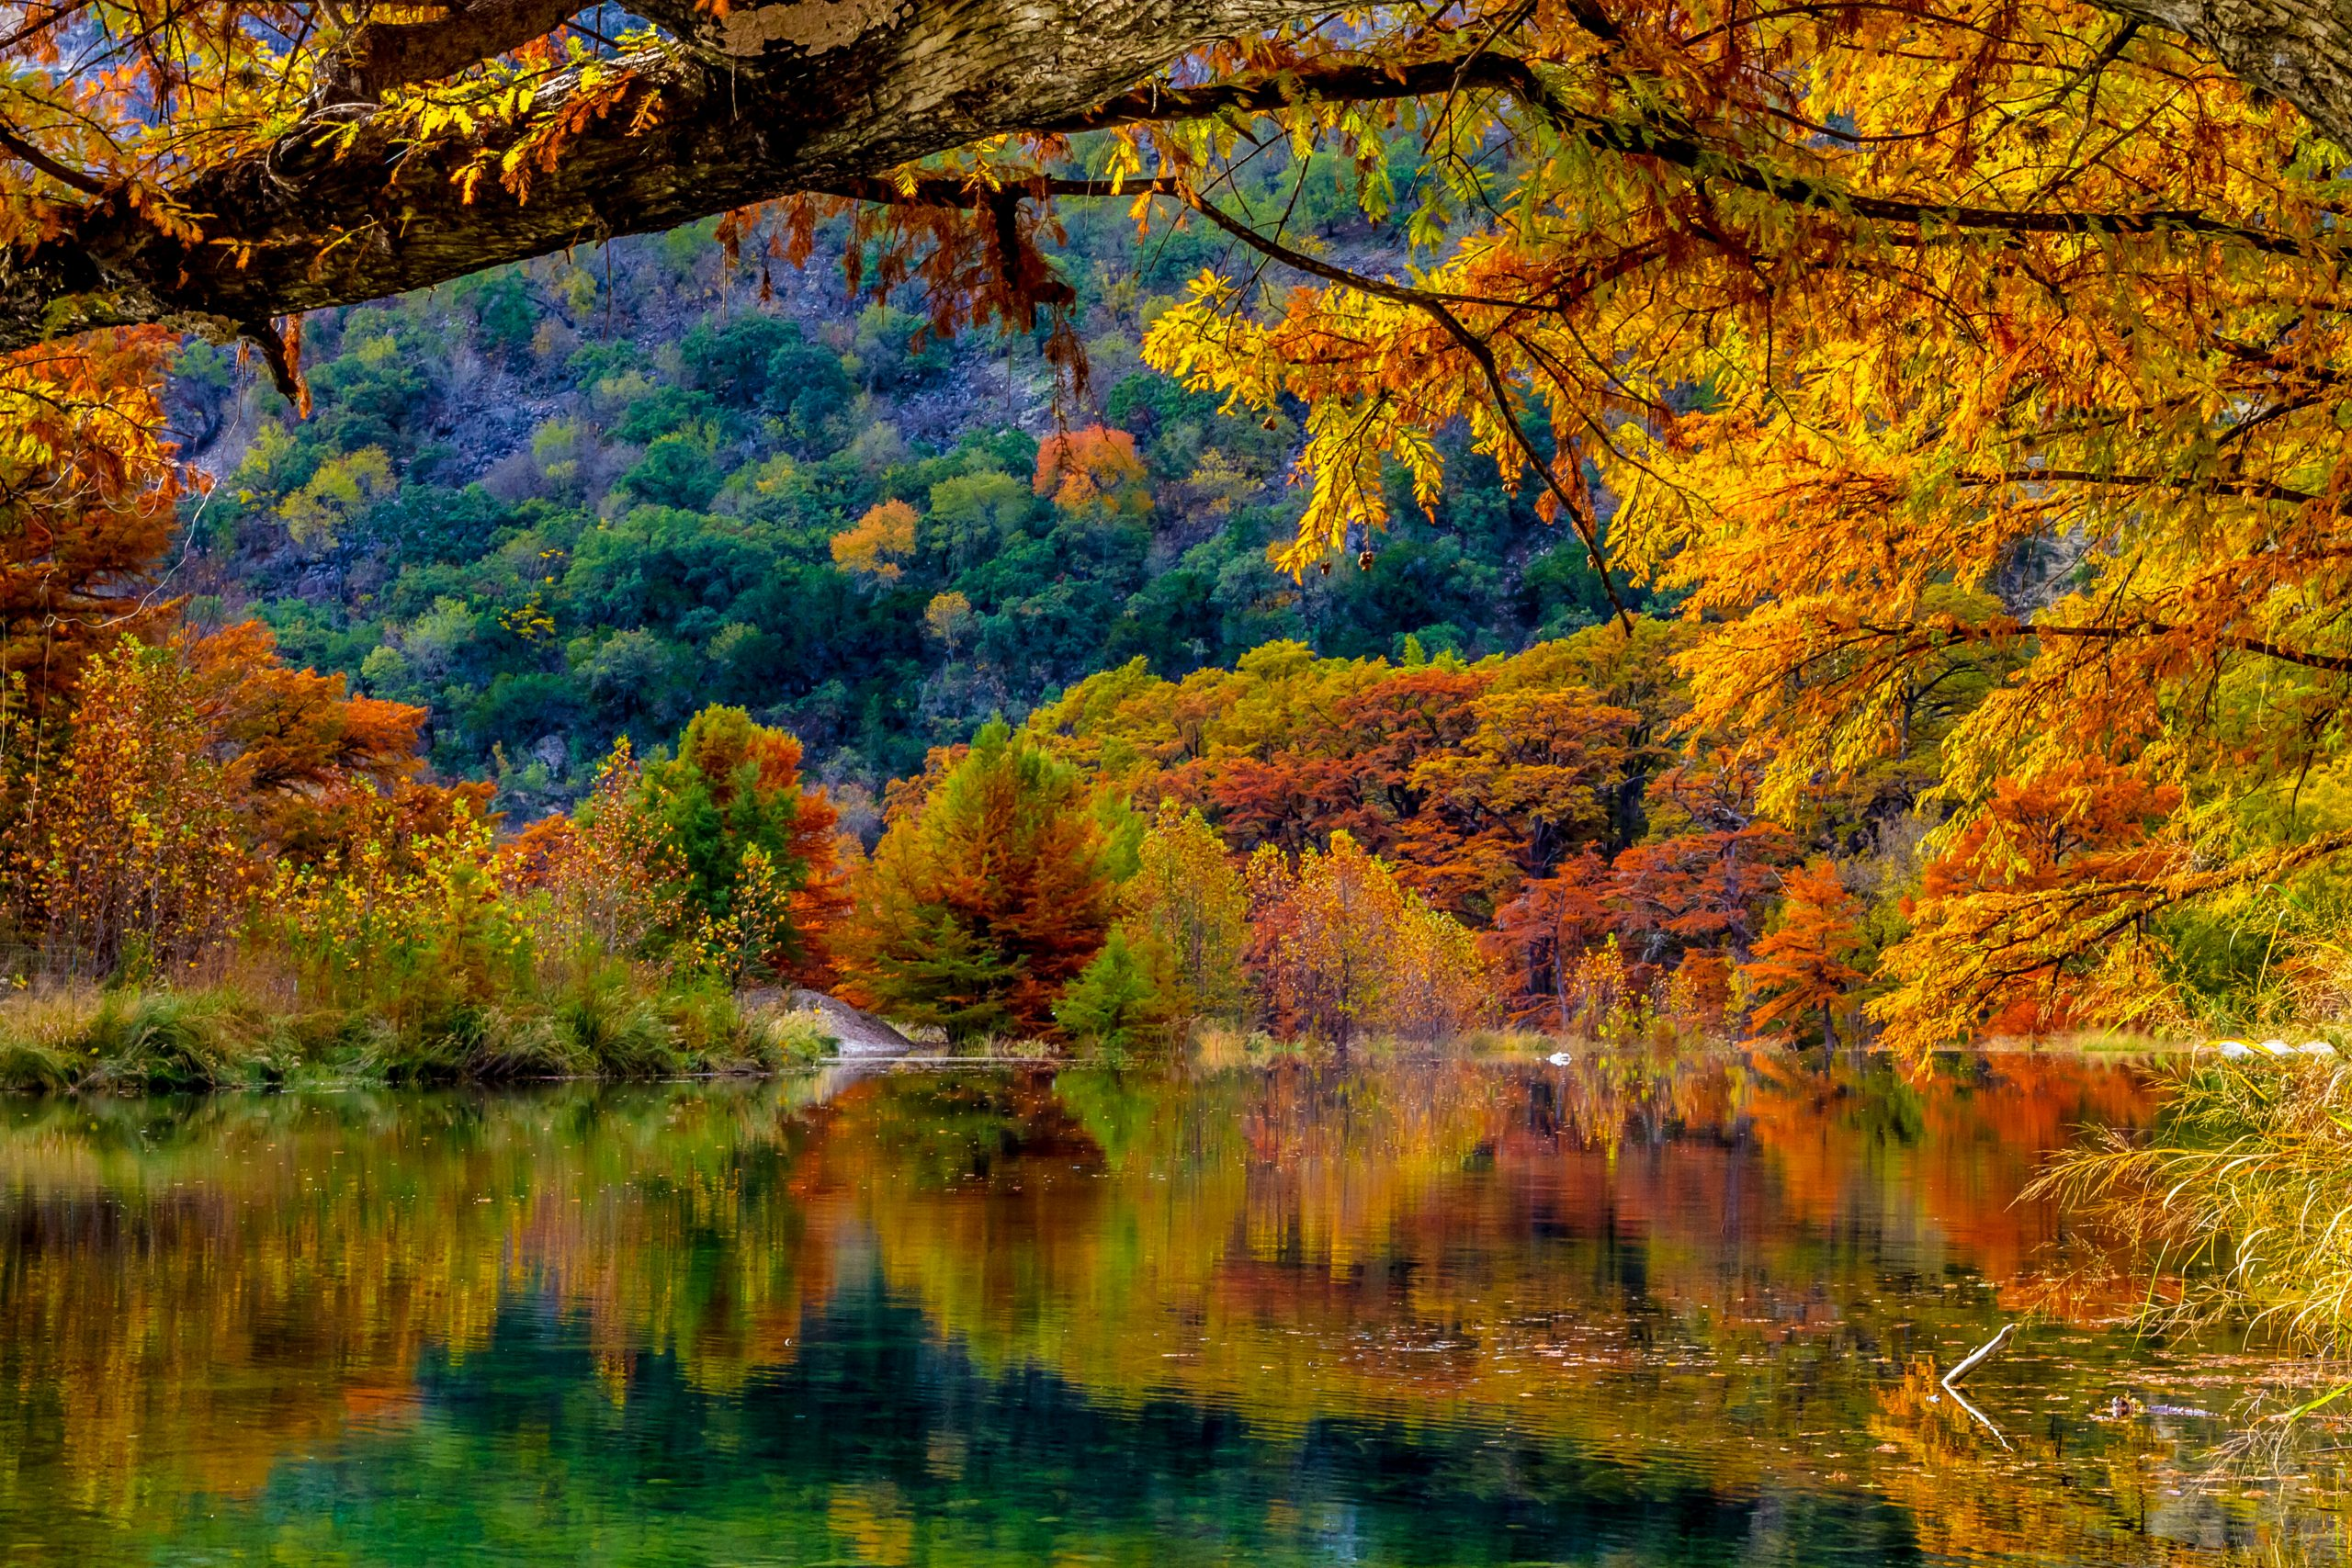 best fall colors in texas at frio river garner state park. fall in texas can include lots of foliage if you know where to look